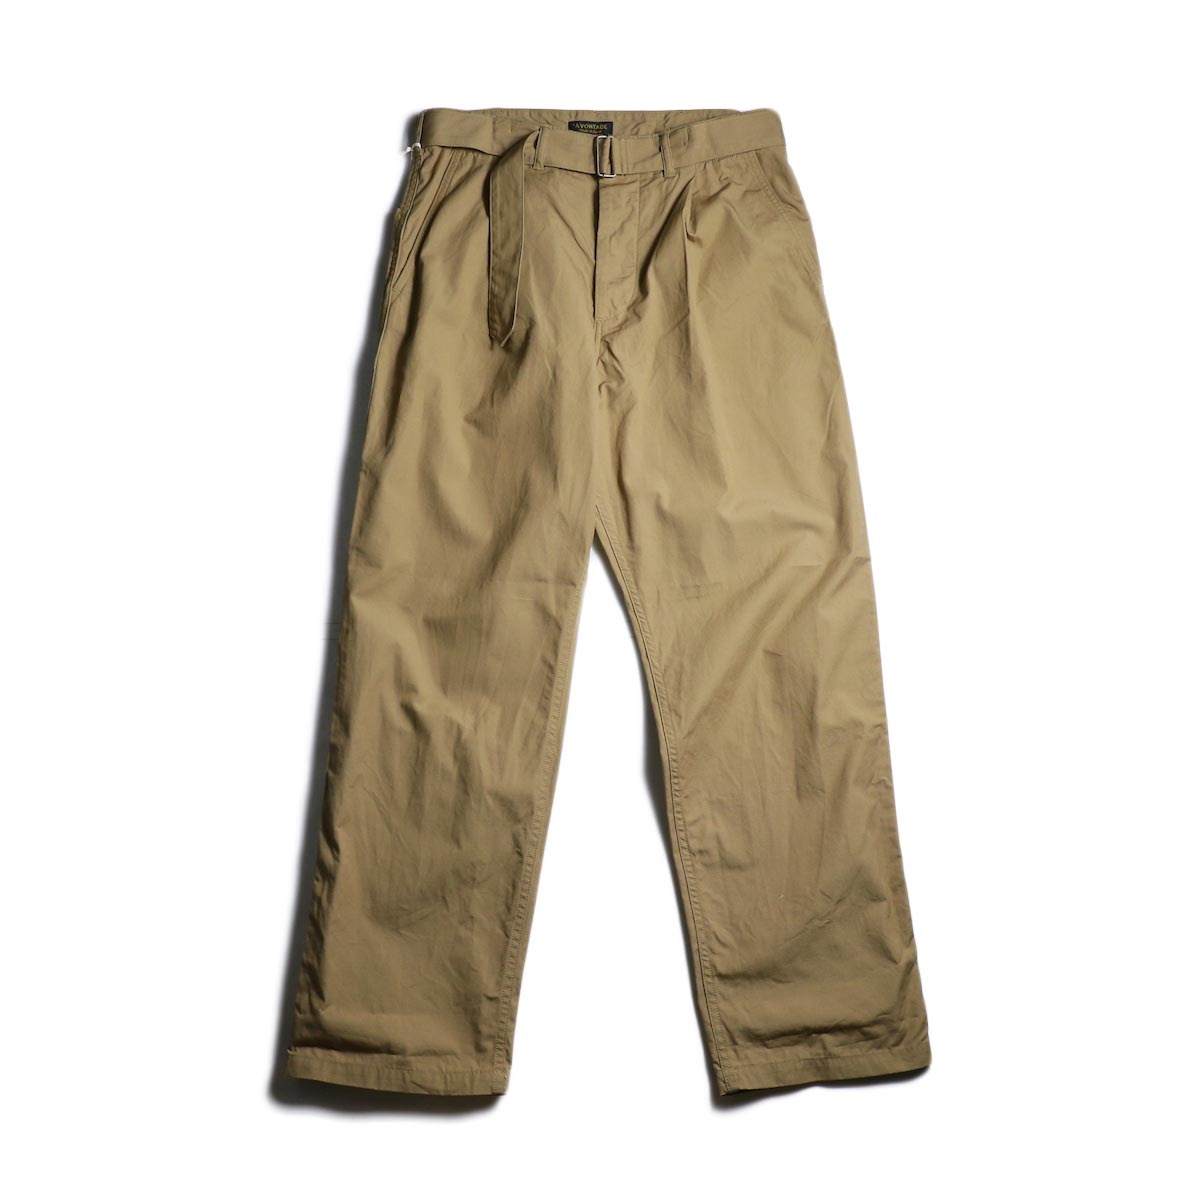 A VONTADE / Mil. Cookman Trousers w/Belt (Tan)